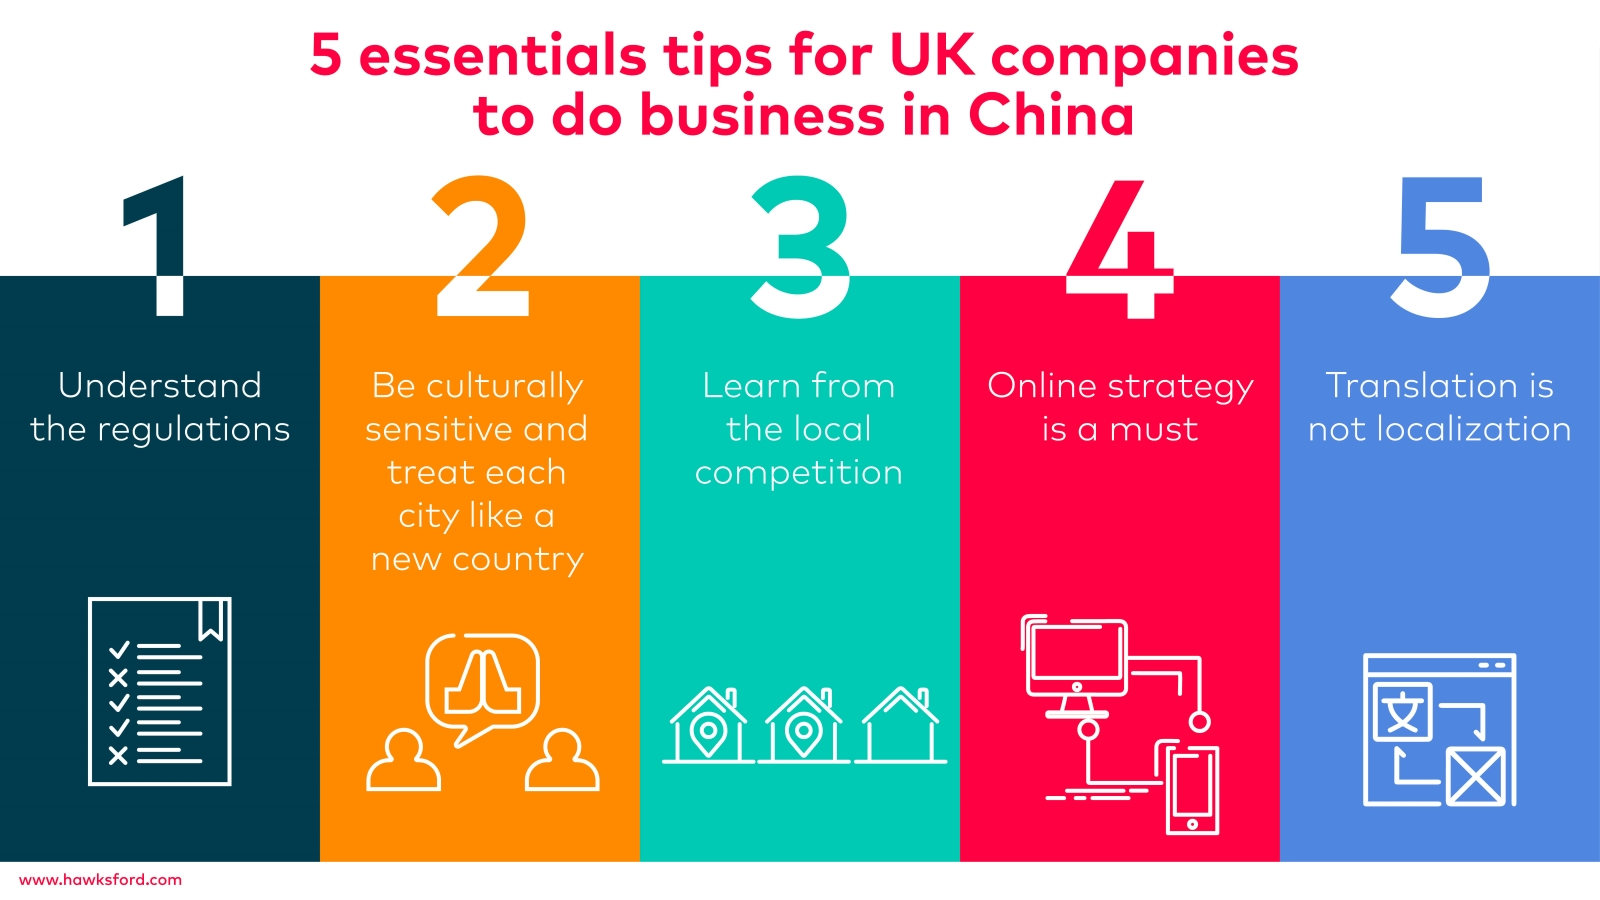 5 tips for UK companies to do business in China